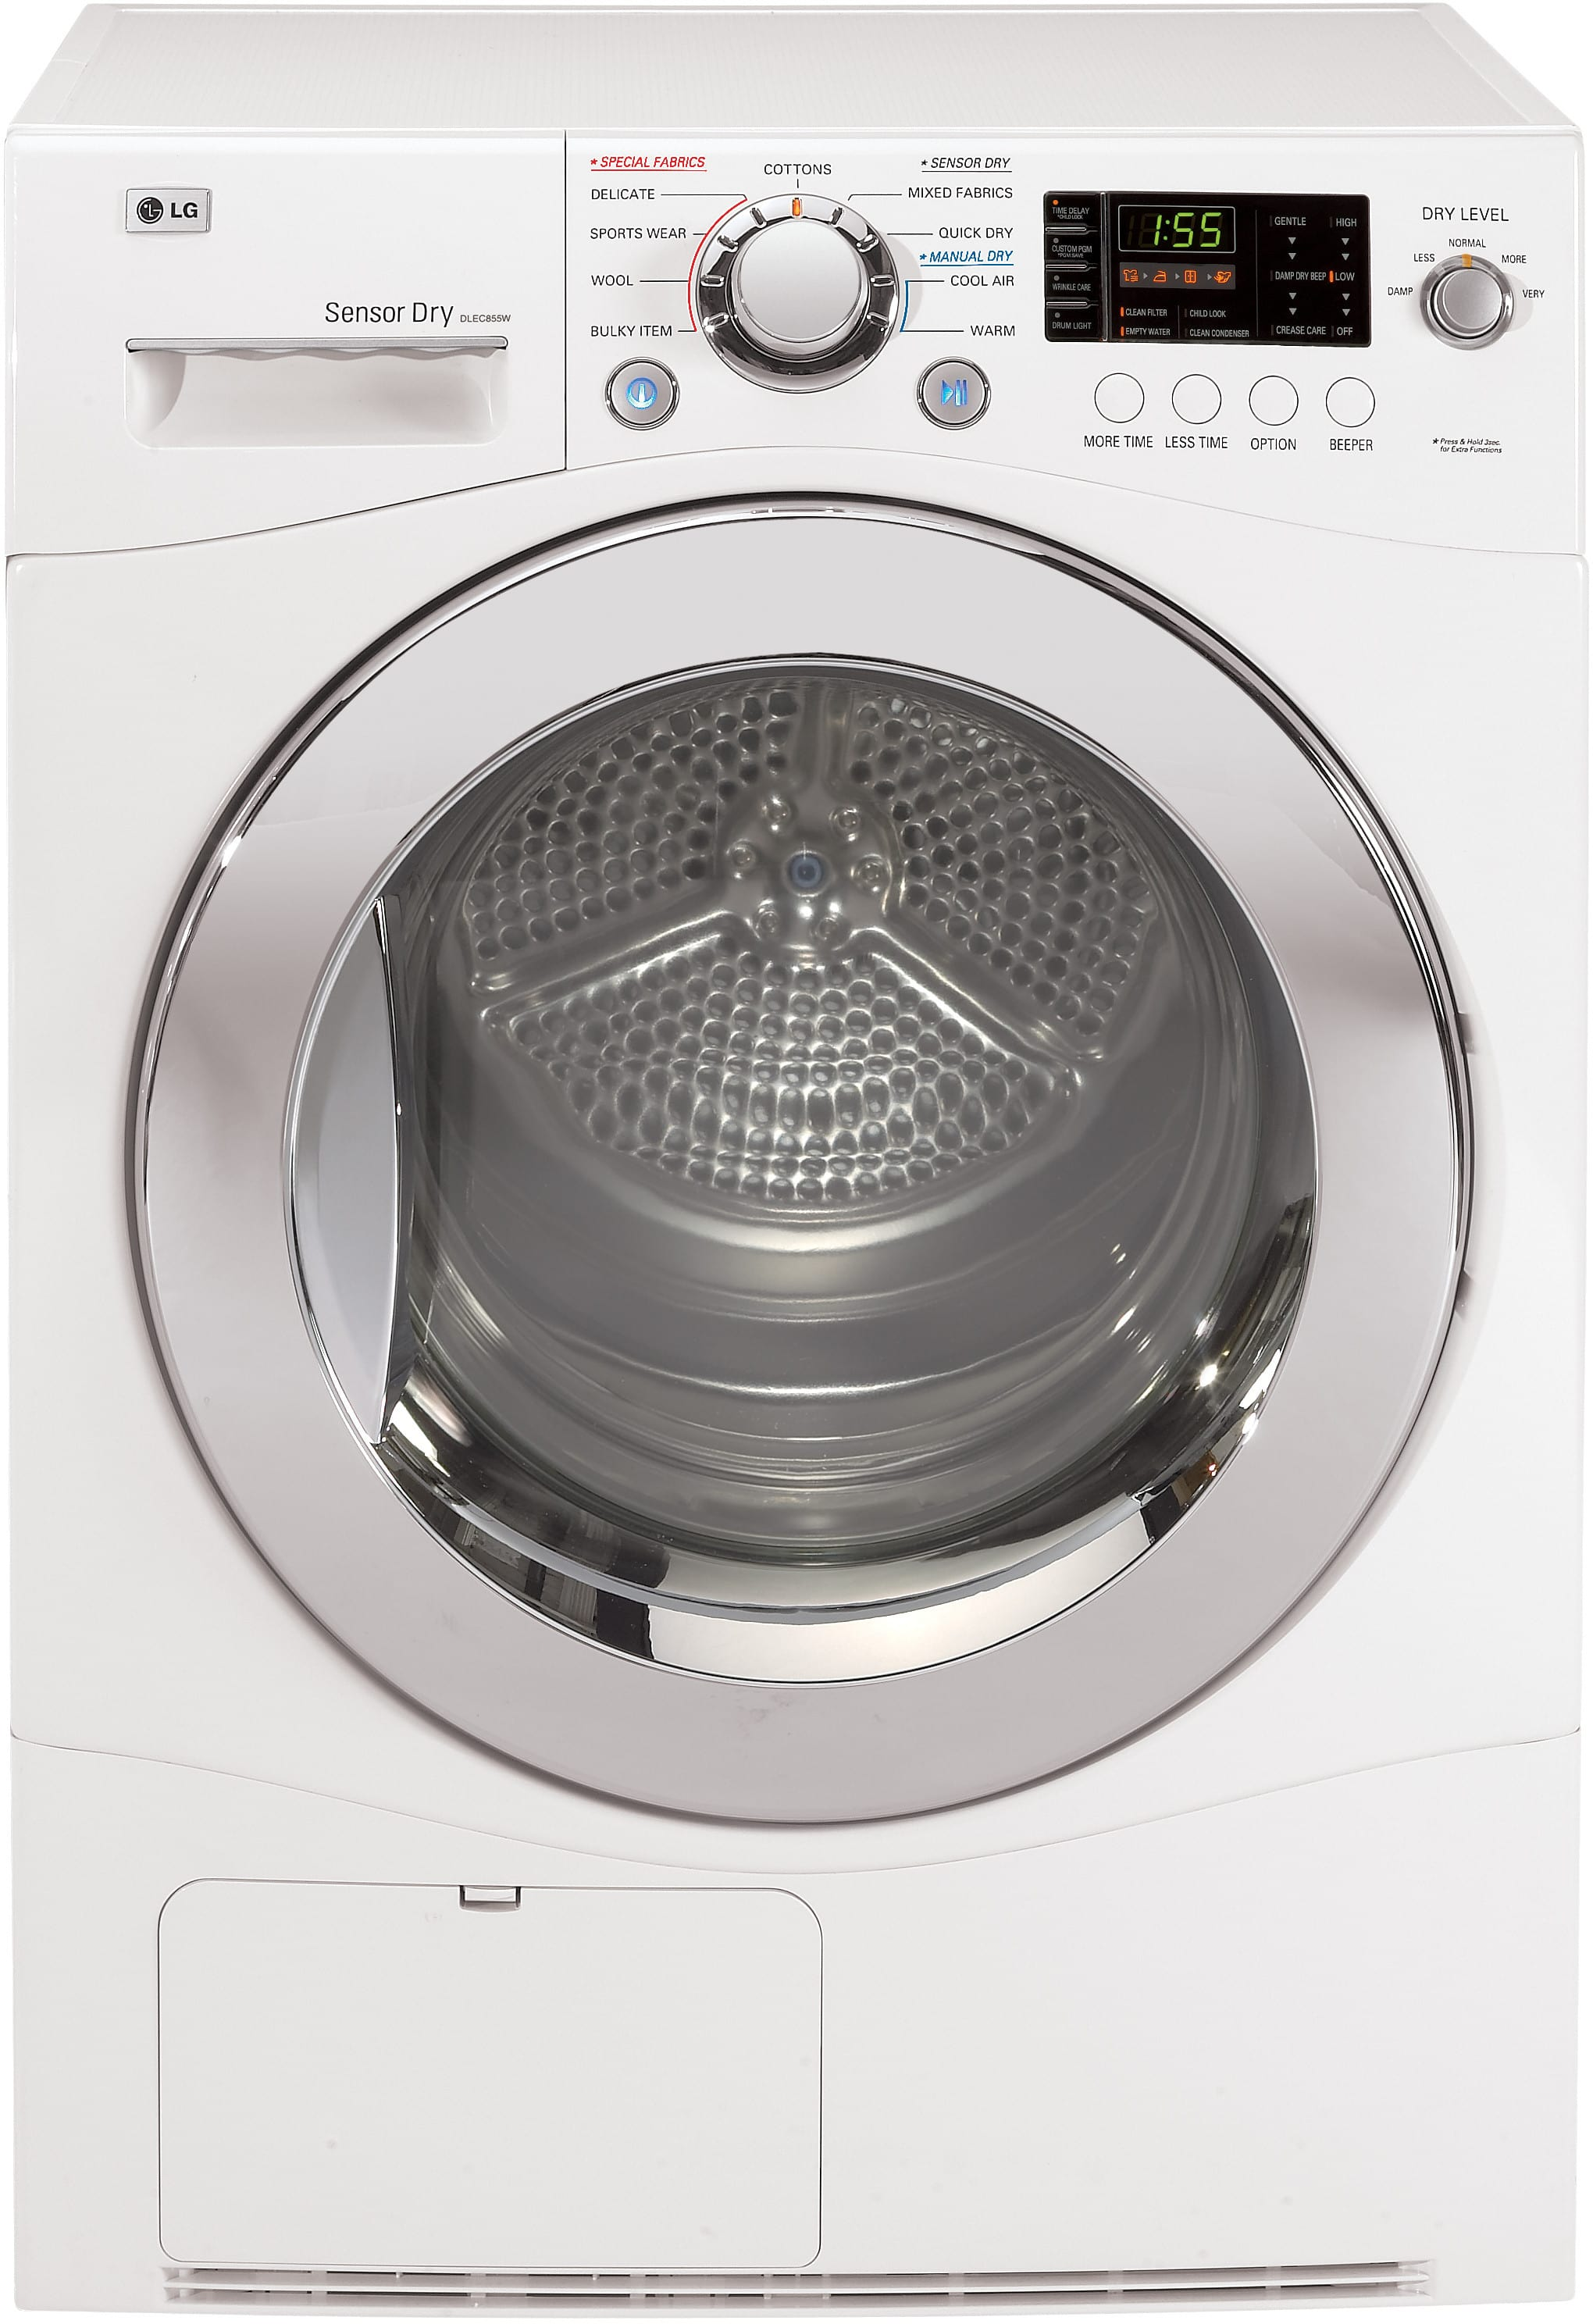 LG DLEC855W 24 Inch 4.2 cu. ft. Compact Electric Condensing Dryer with 9  Dry Cycles, 5 Temperature Selections, Sensor Dry, Wrinkle Care, LoDecibel  Quiet ...